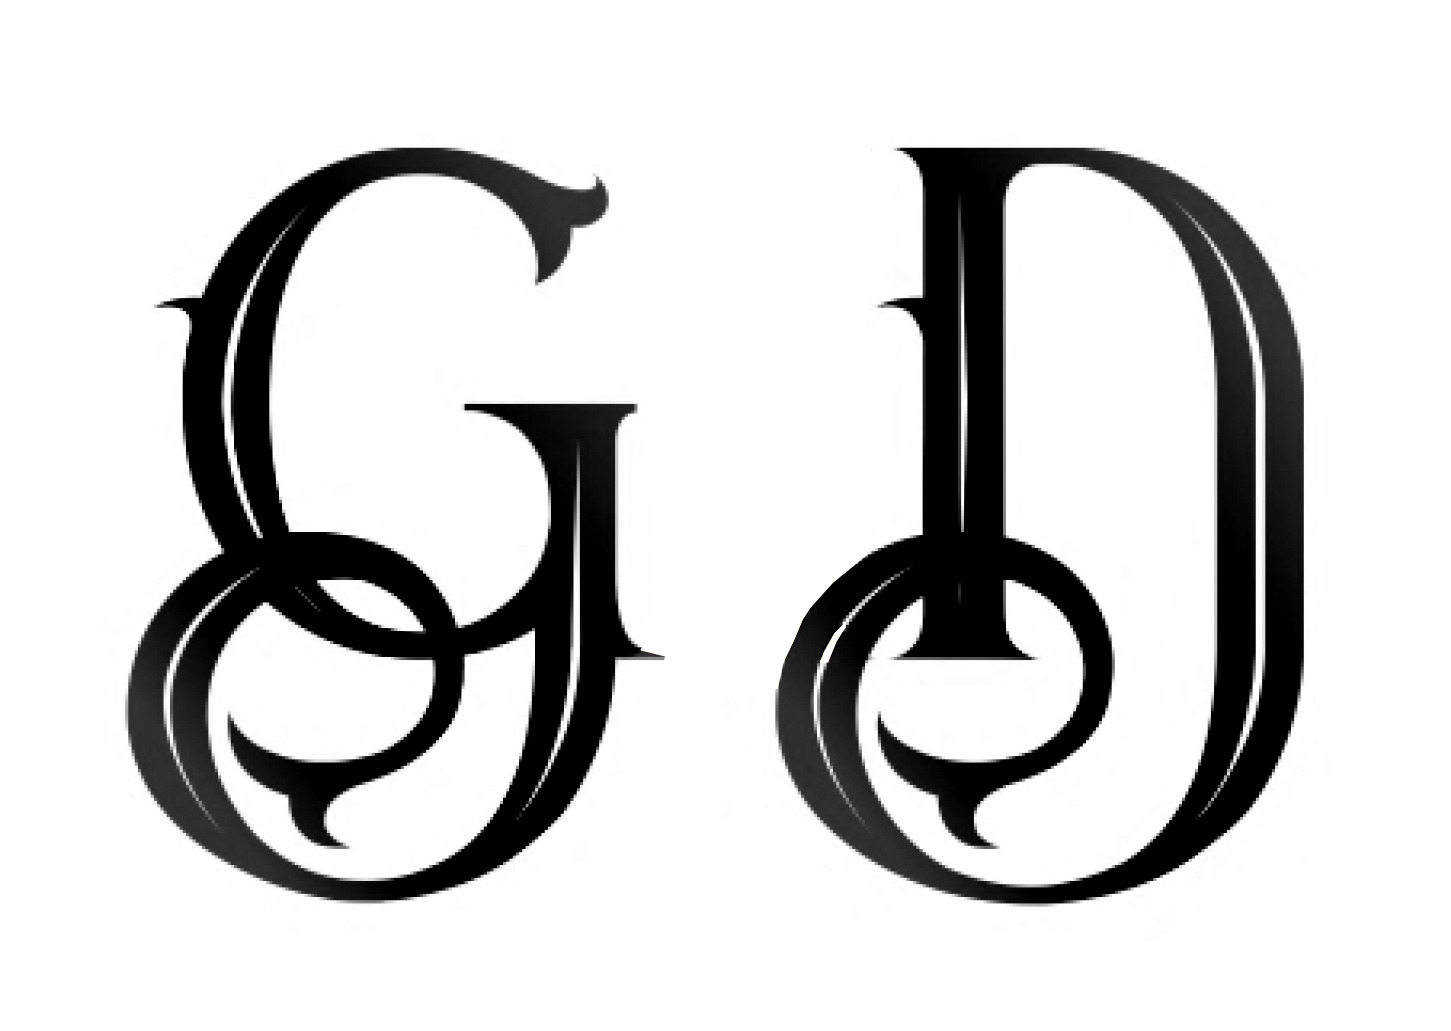 The letter G and D